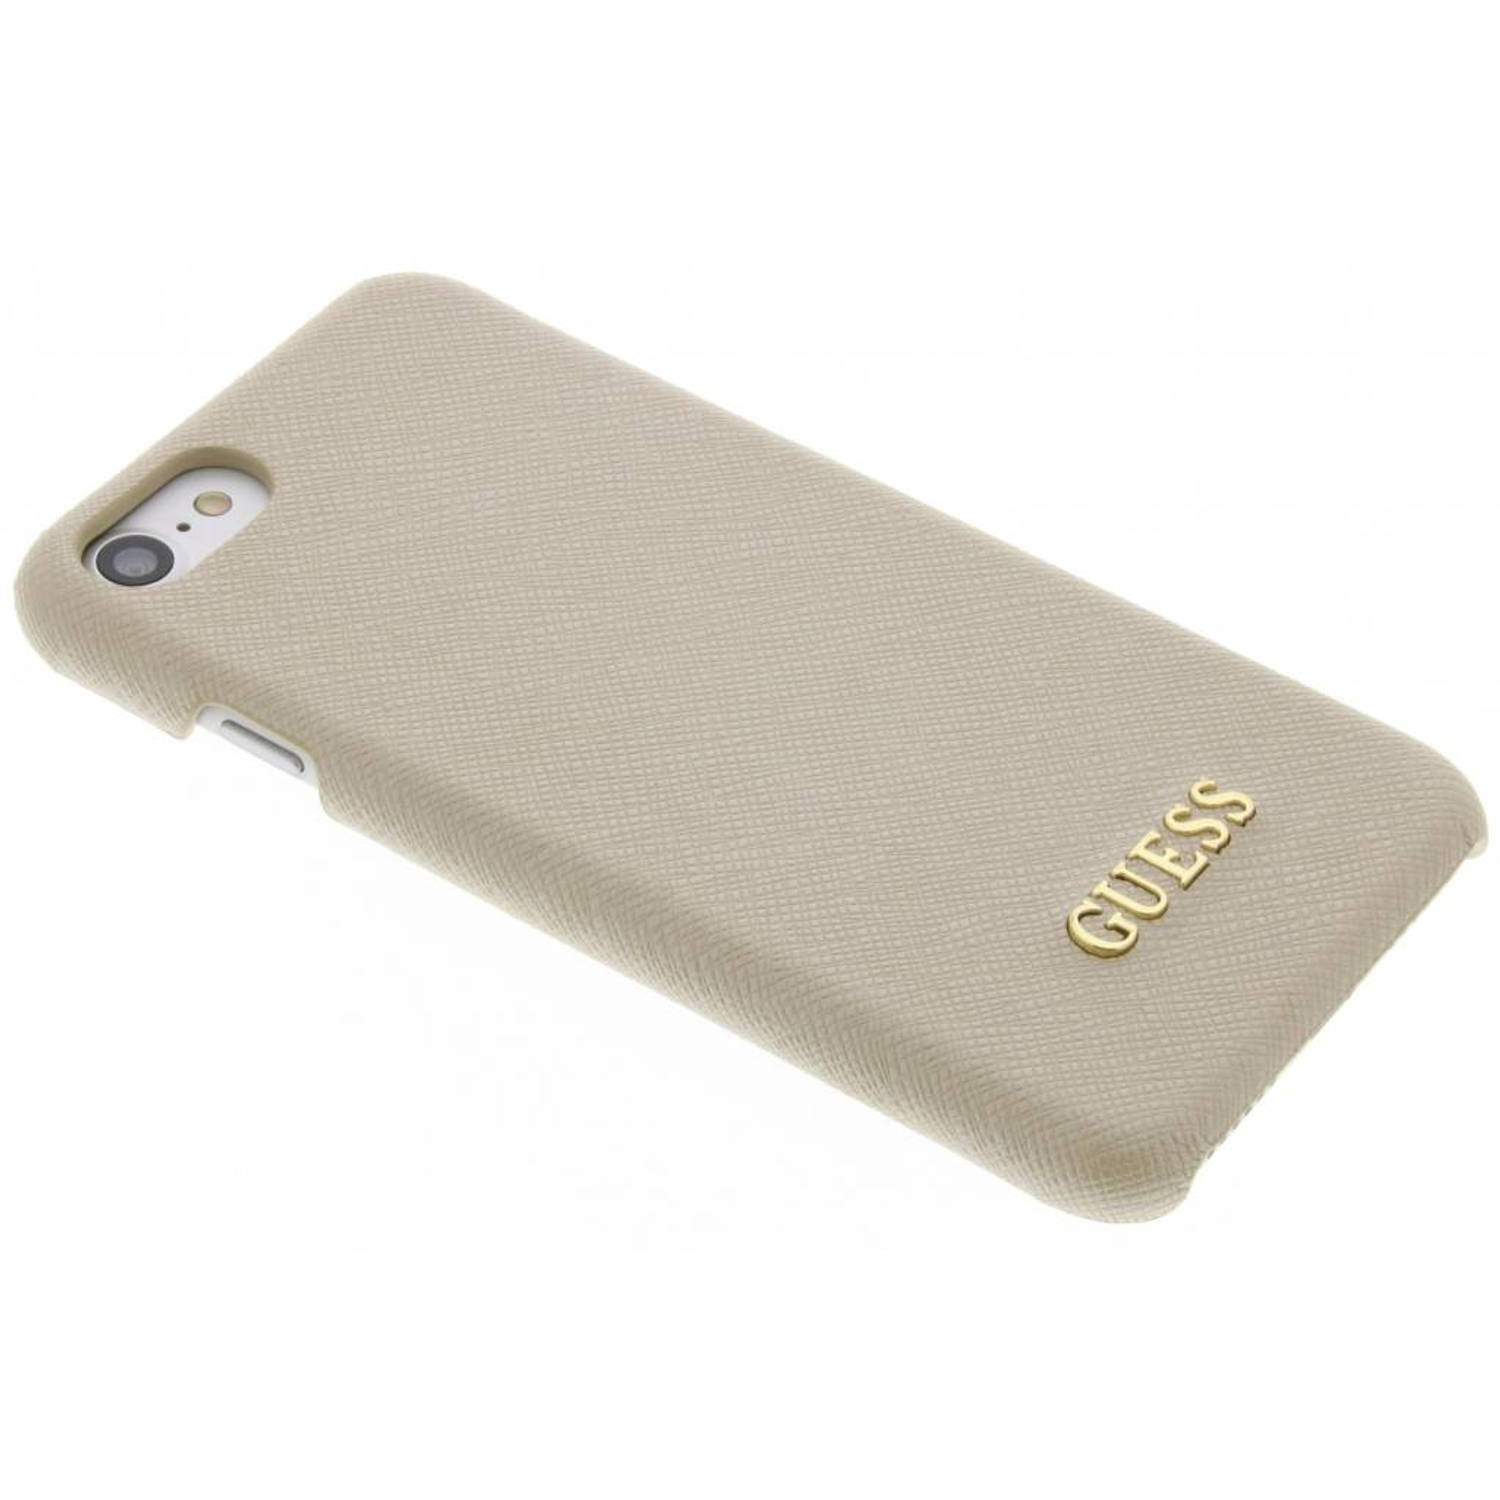 Saffiano Collection Hard Case voor de iPhone 7 Beige